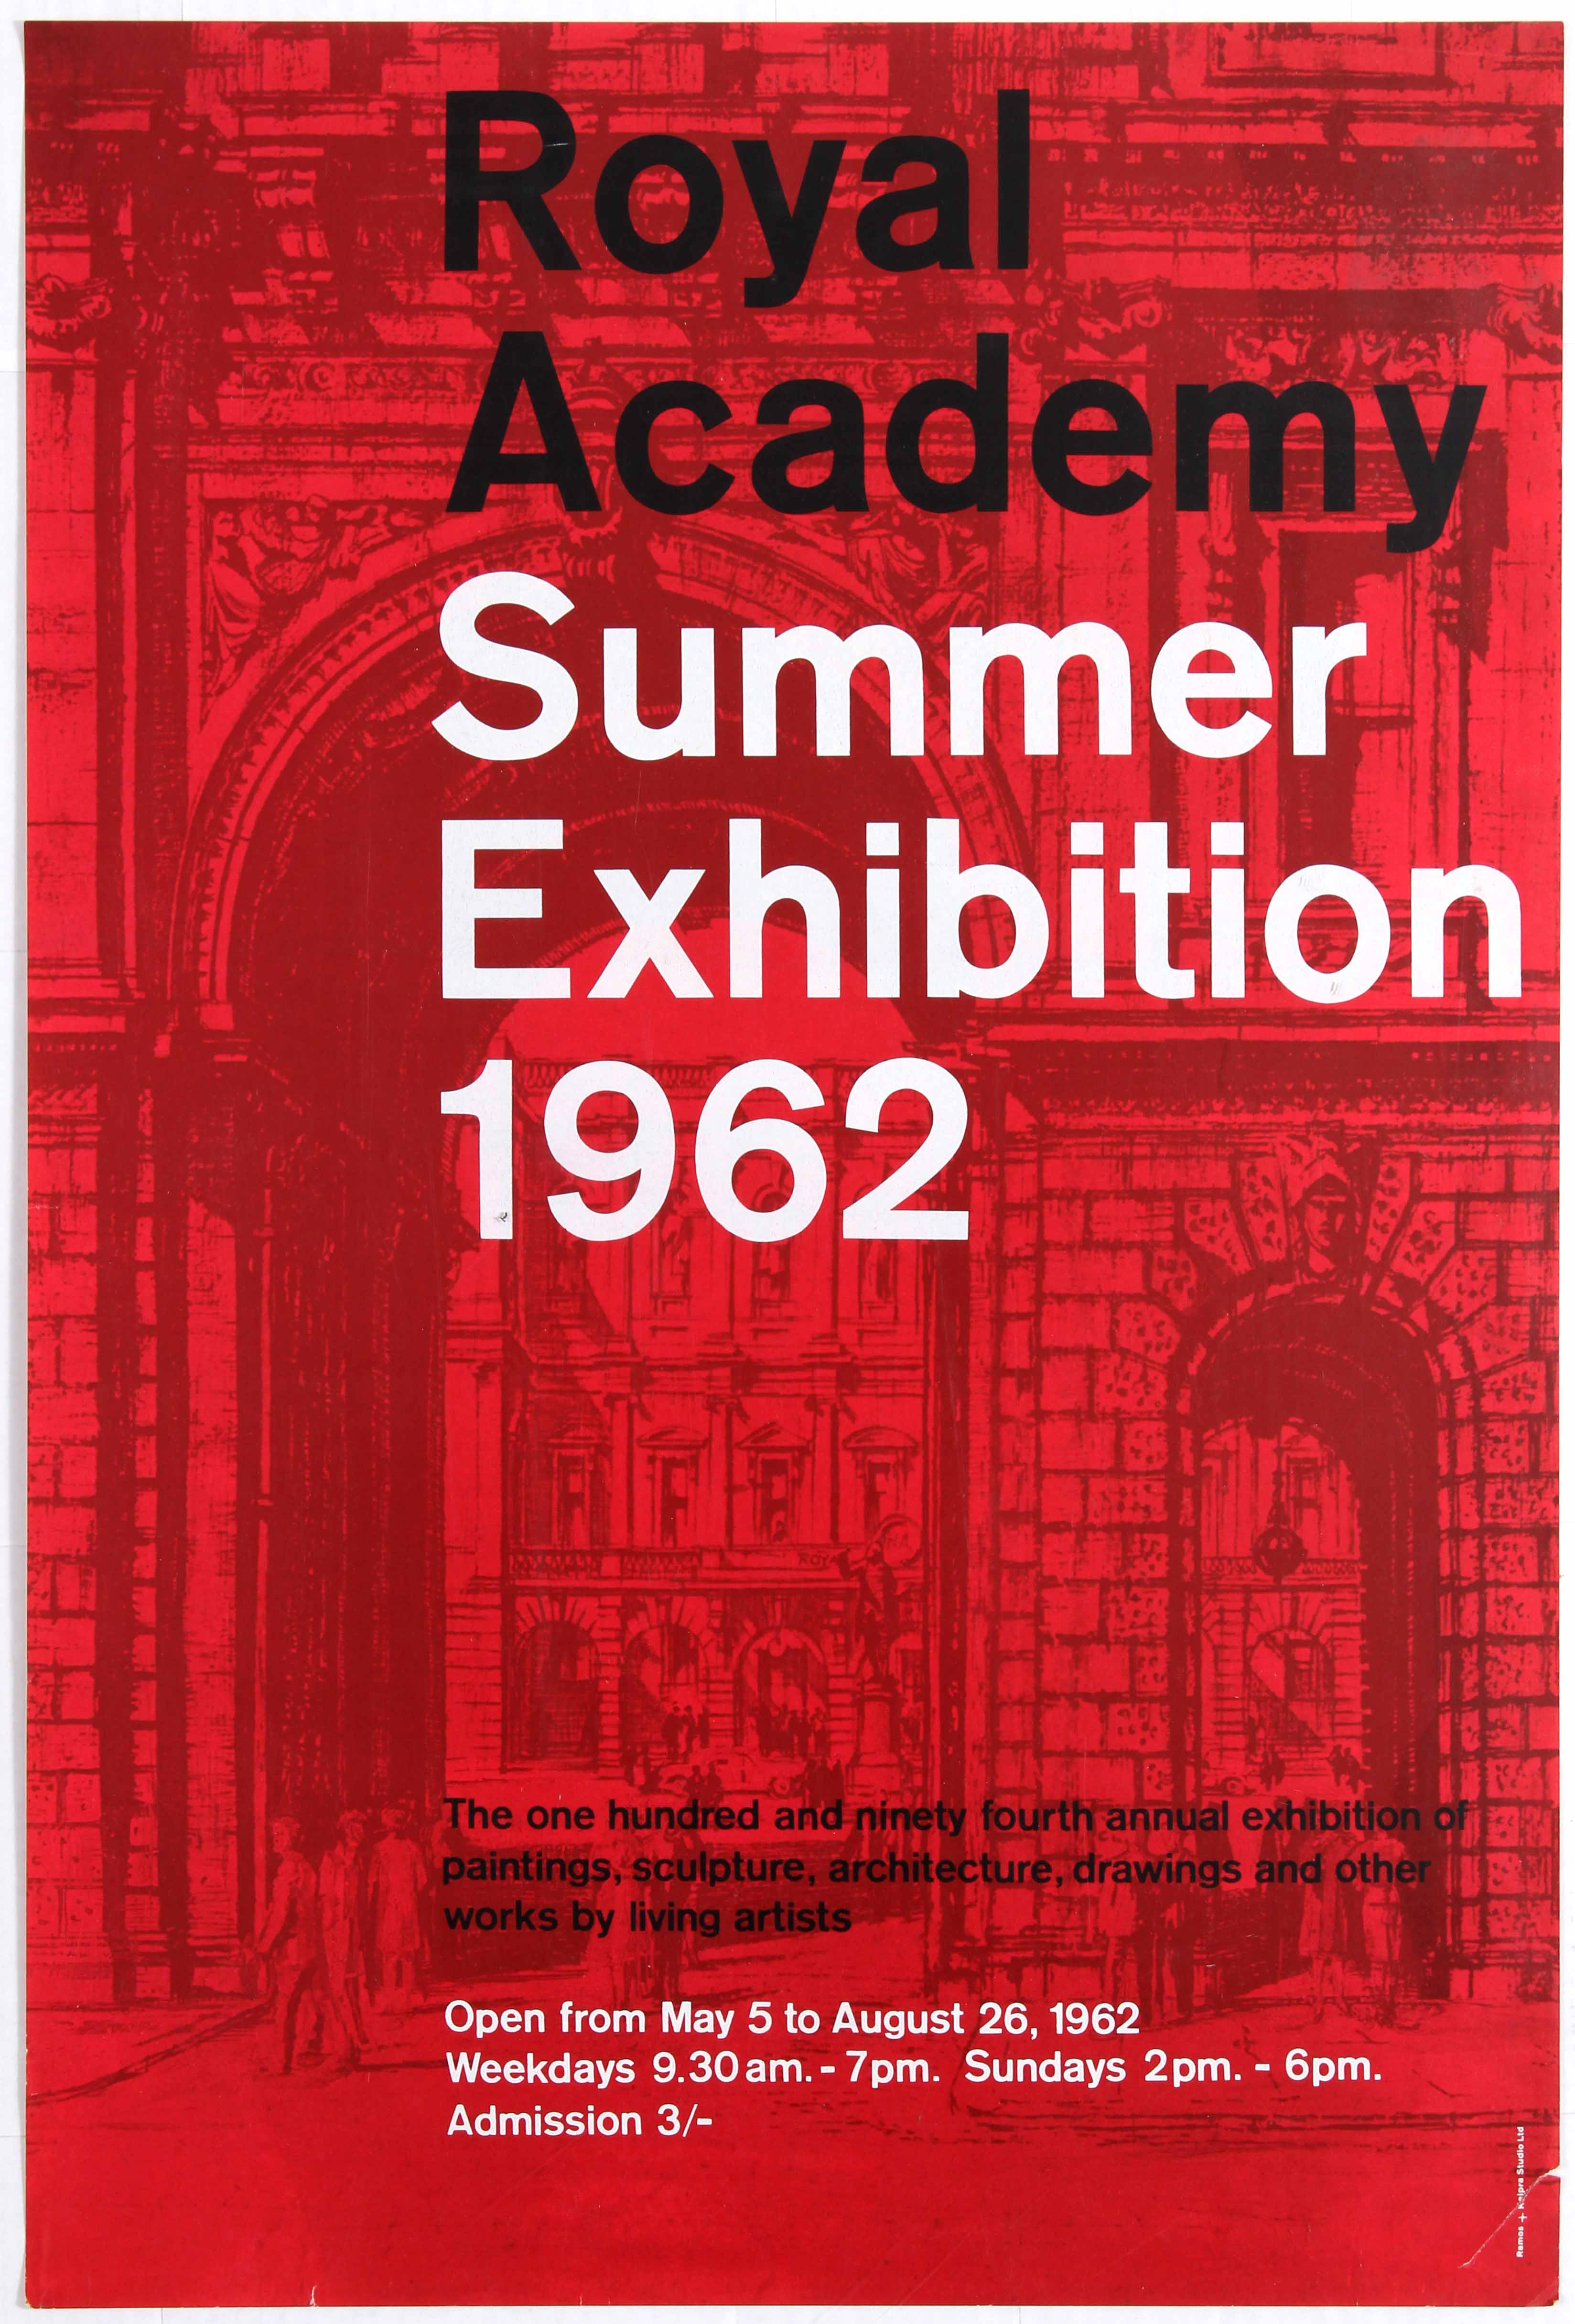 Lot 1619 - Advertising Poster Royal Academy Summer Exhibition 1962.